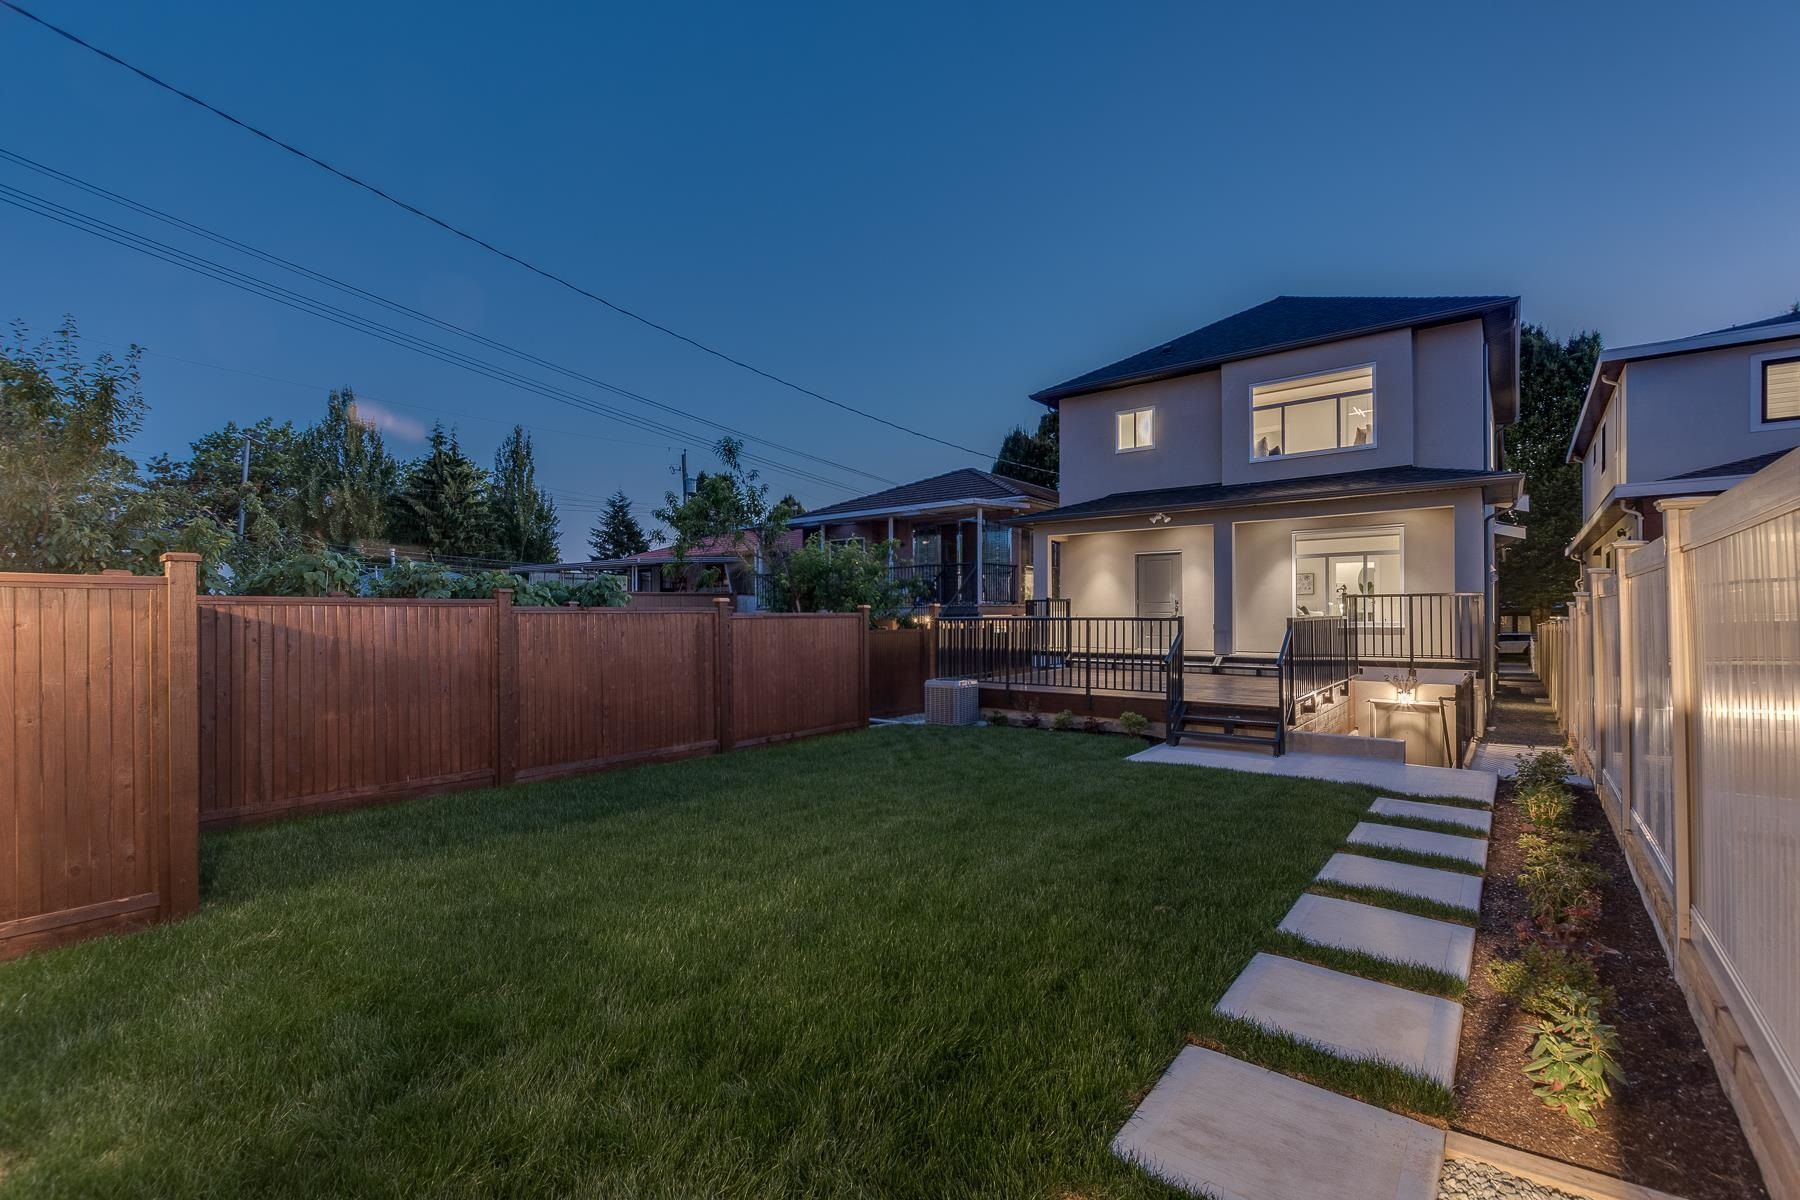 Main Photo: 6446 ARGYLE Street in Vancouver: Knight 1/2 Duplex for sale (Vancouver East)  : MLS®# R2609018